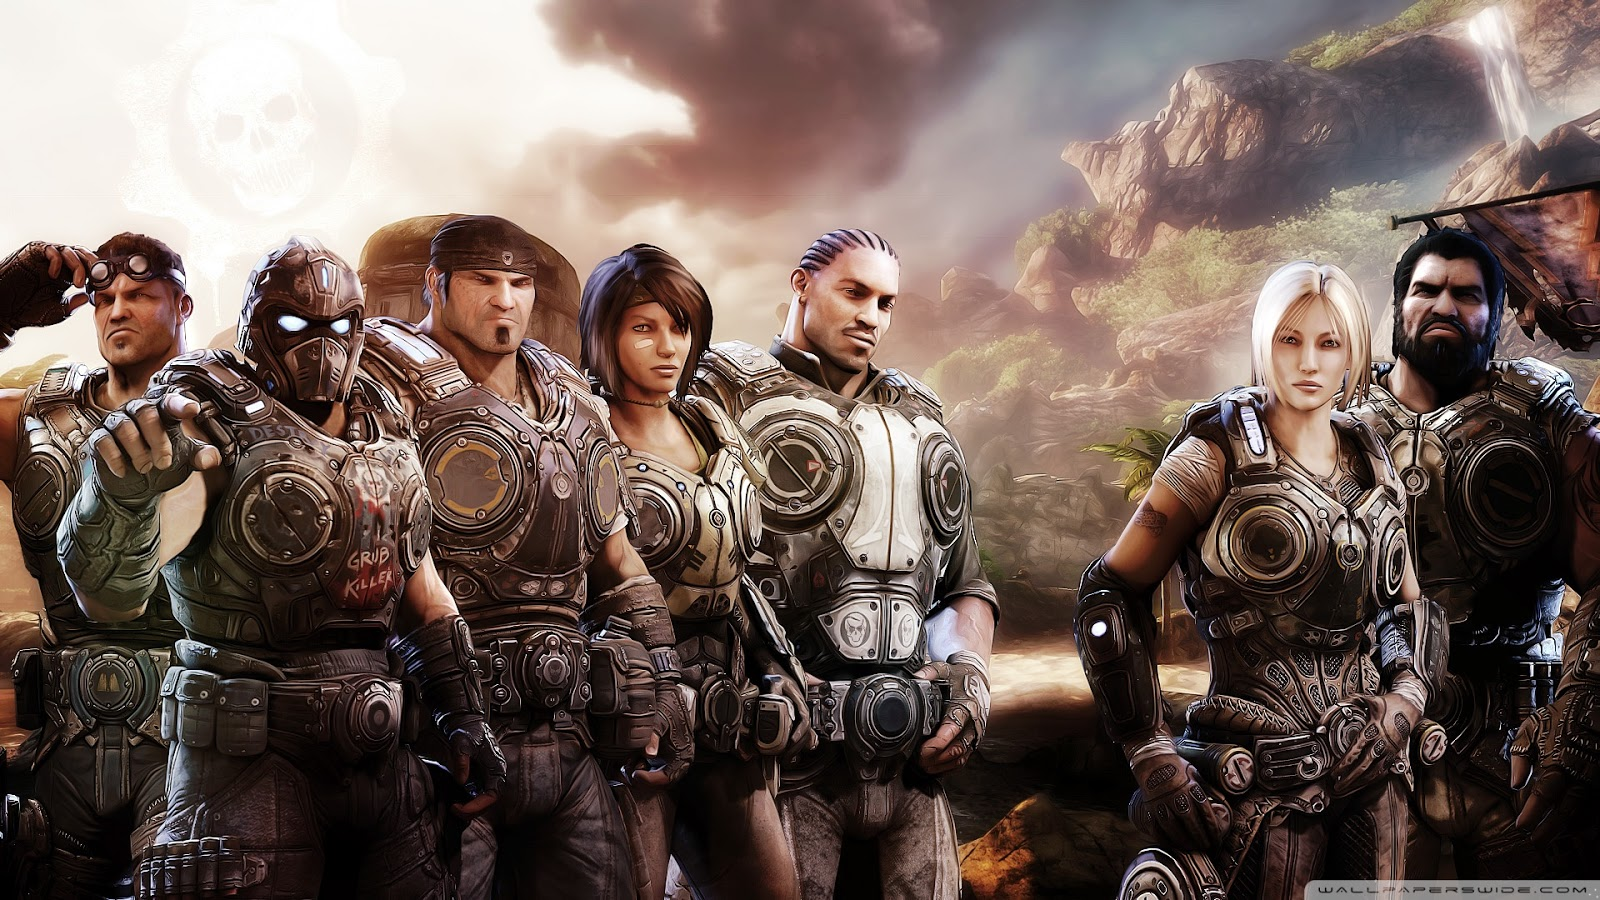 Gears Of War 3 Wallpapers: Wallpapers HD: Gears Of War HD Wallpapers Del Juego